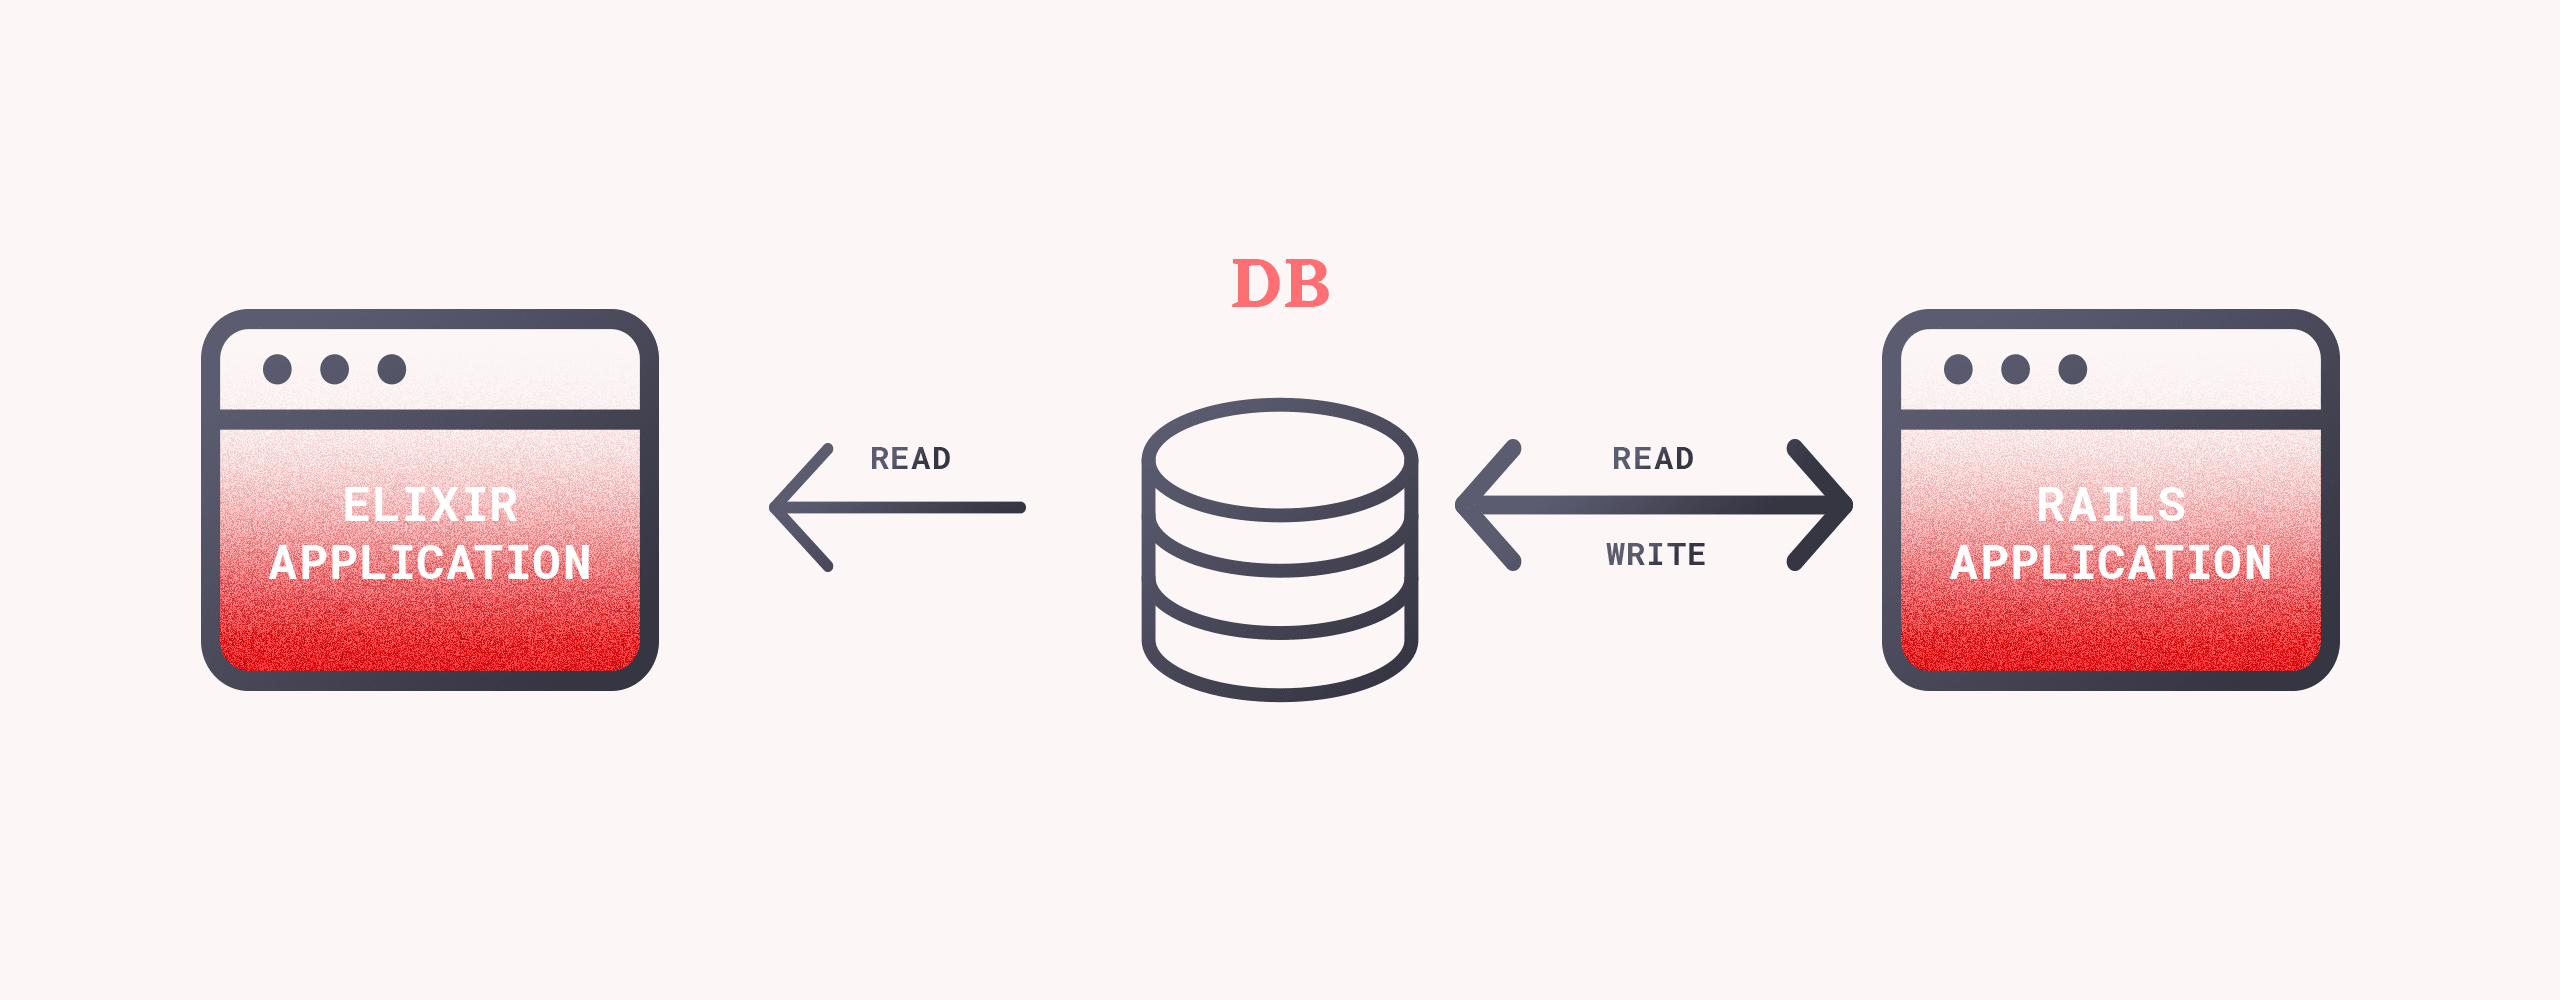 Database permissions for each app